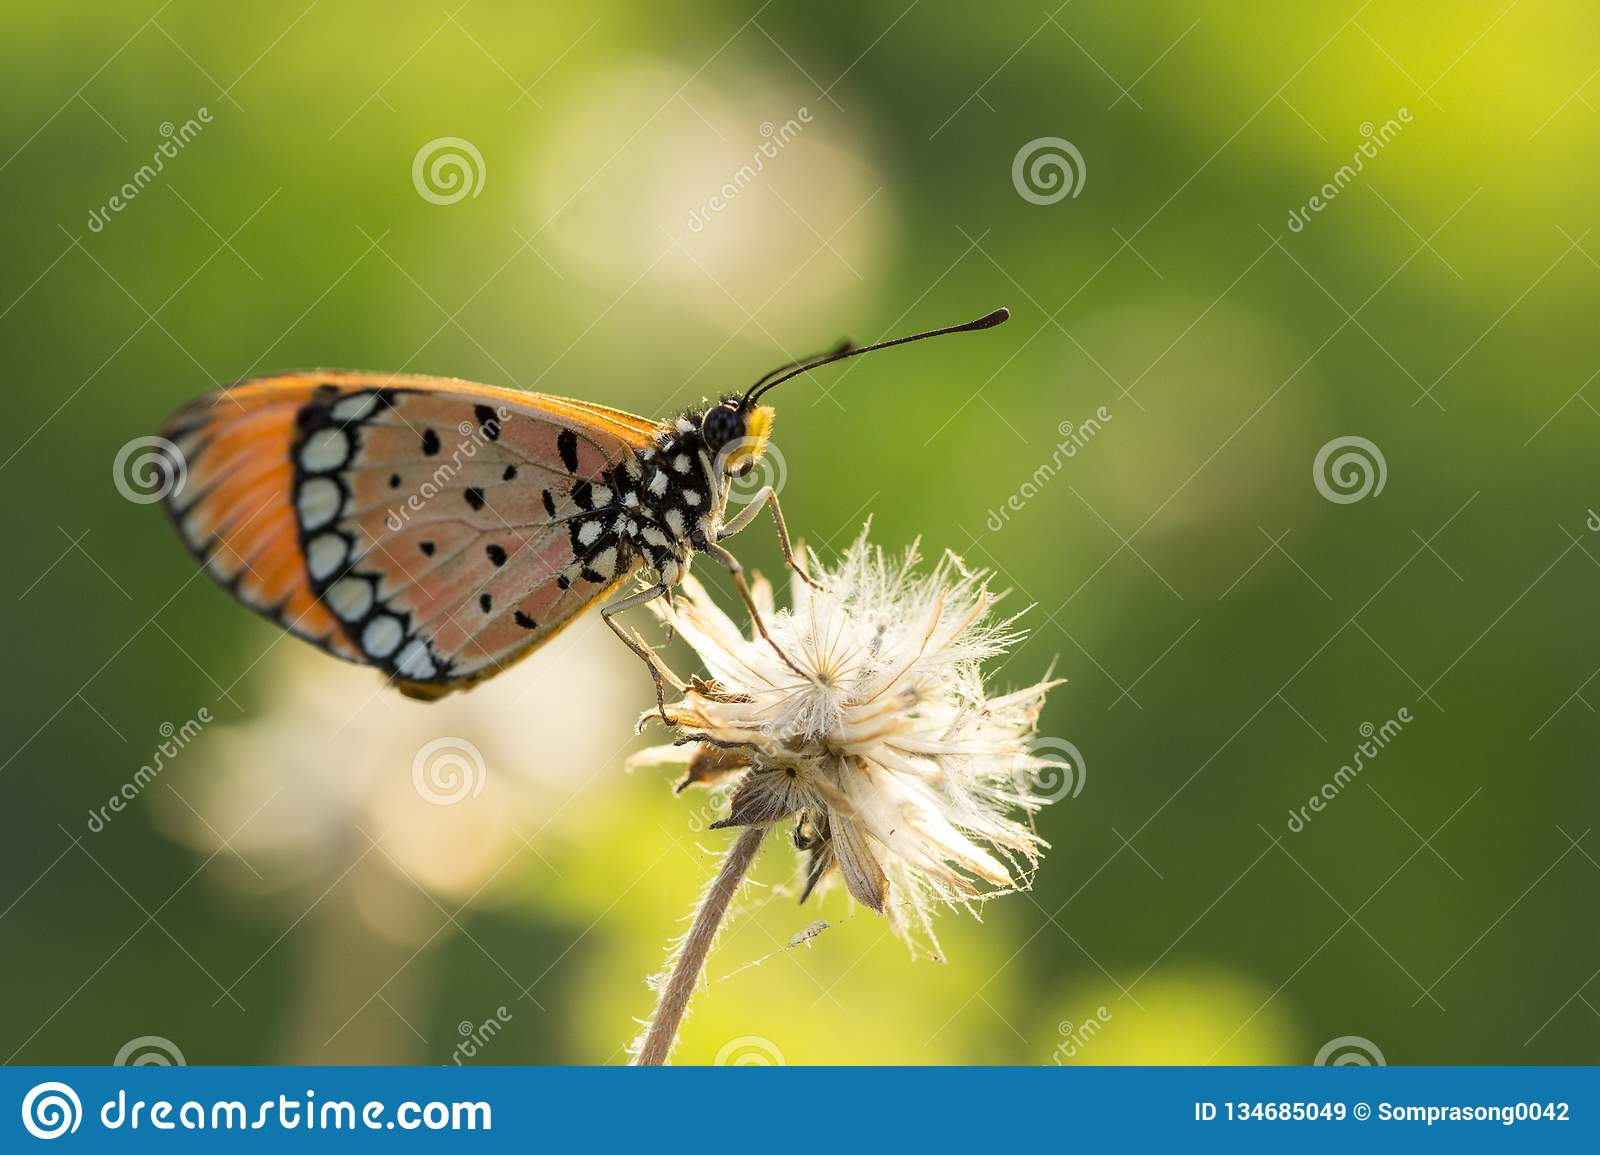 The Tawny Coster butterfly Acraea violae on flower and green nature